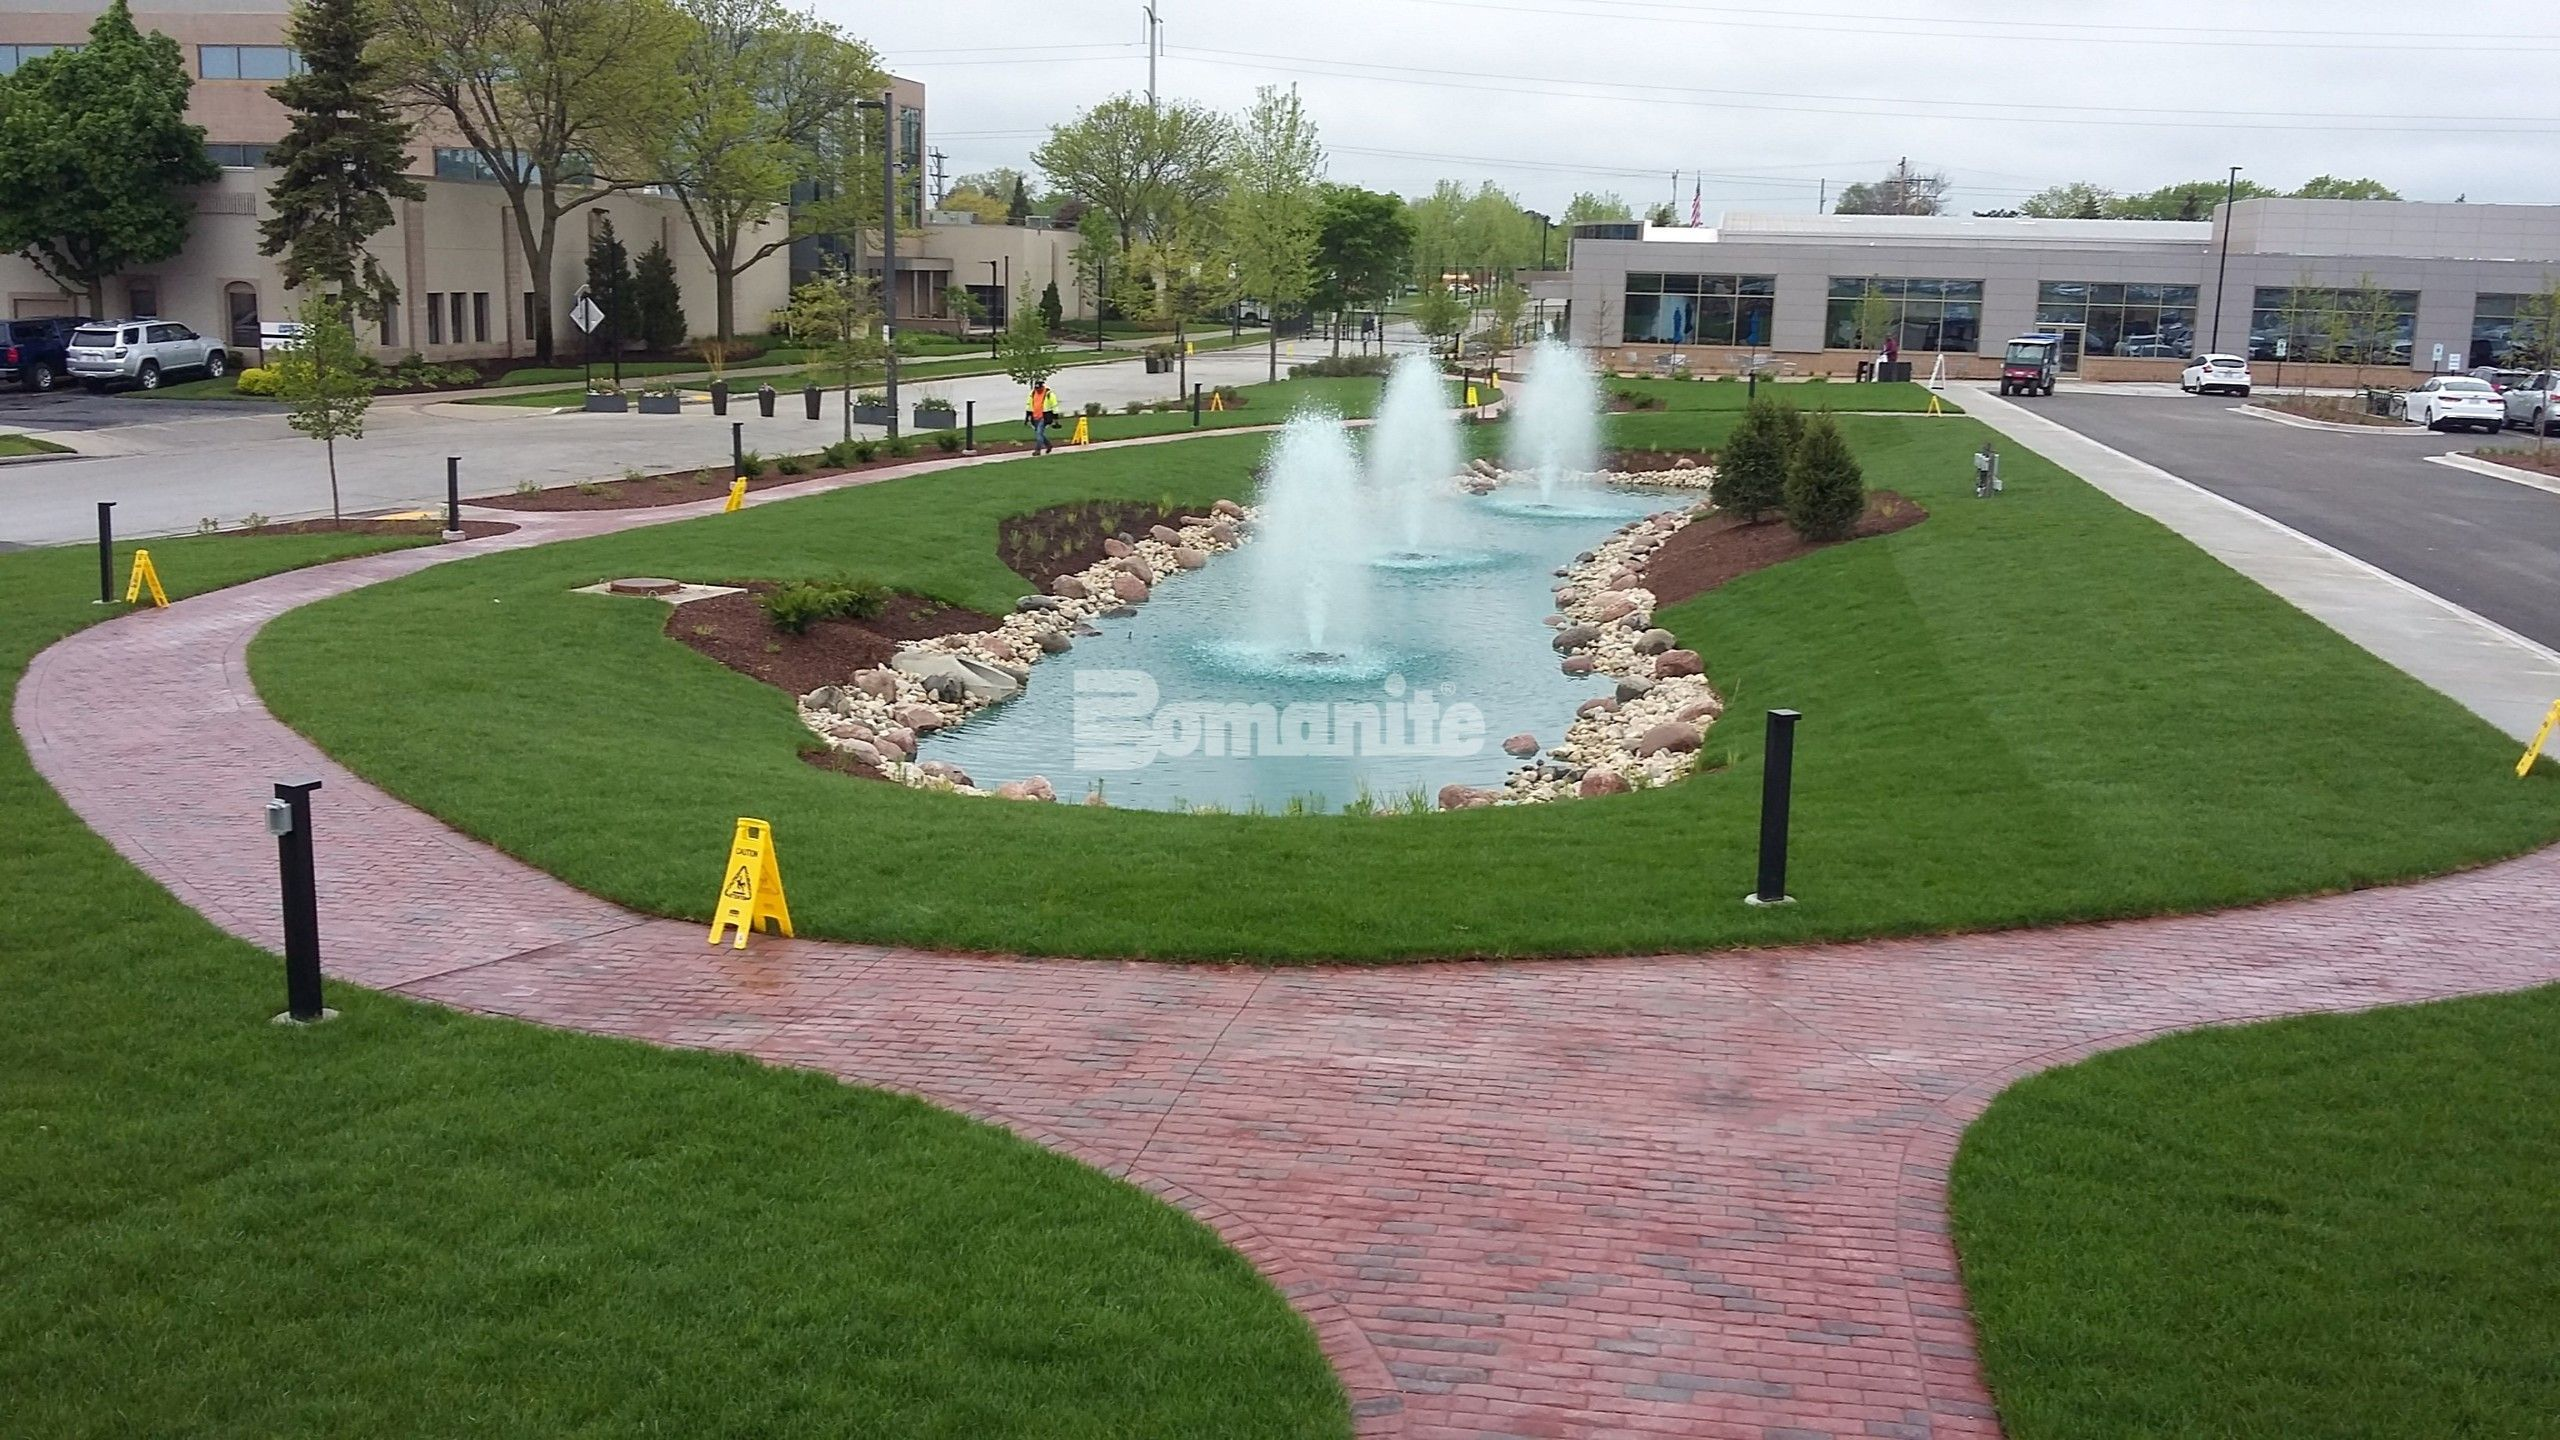 Bomanite of Wisconsin uses Bomanite Imprint Systems to create 6,000 SF of paved concrete pathways leading up to various buildings and surrounding the featured fountains in the center of Direct Supply headquarters in Milwaukee, WI.